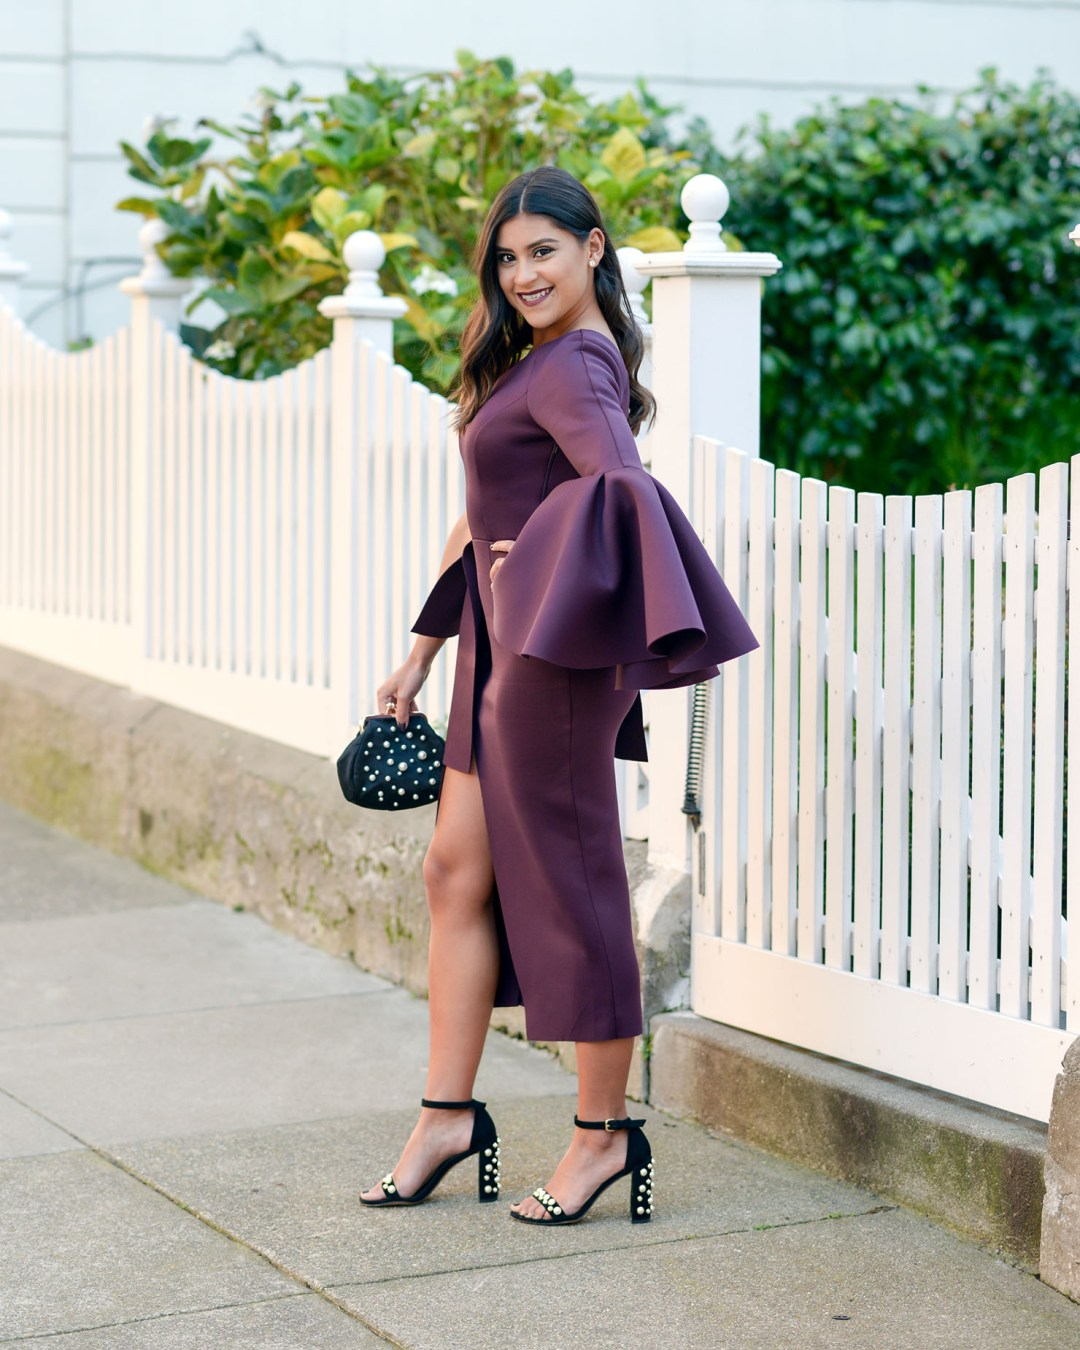 Lifestyle blogger Kelsey Kaplan of Kelsey Kaplan Fashion wearing scuba knit midi dress and Stuart Weitzman pearl sandals